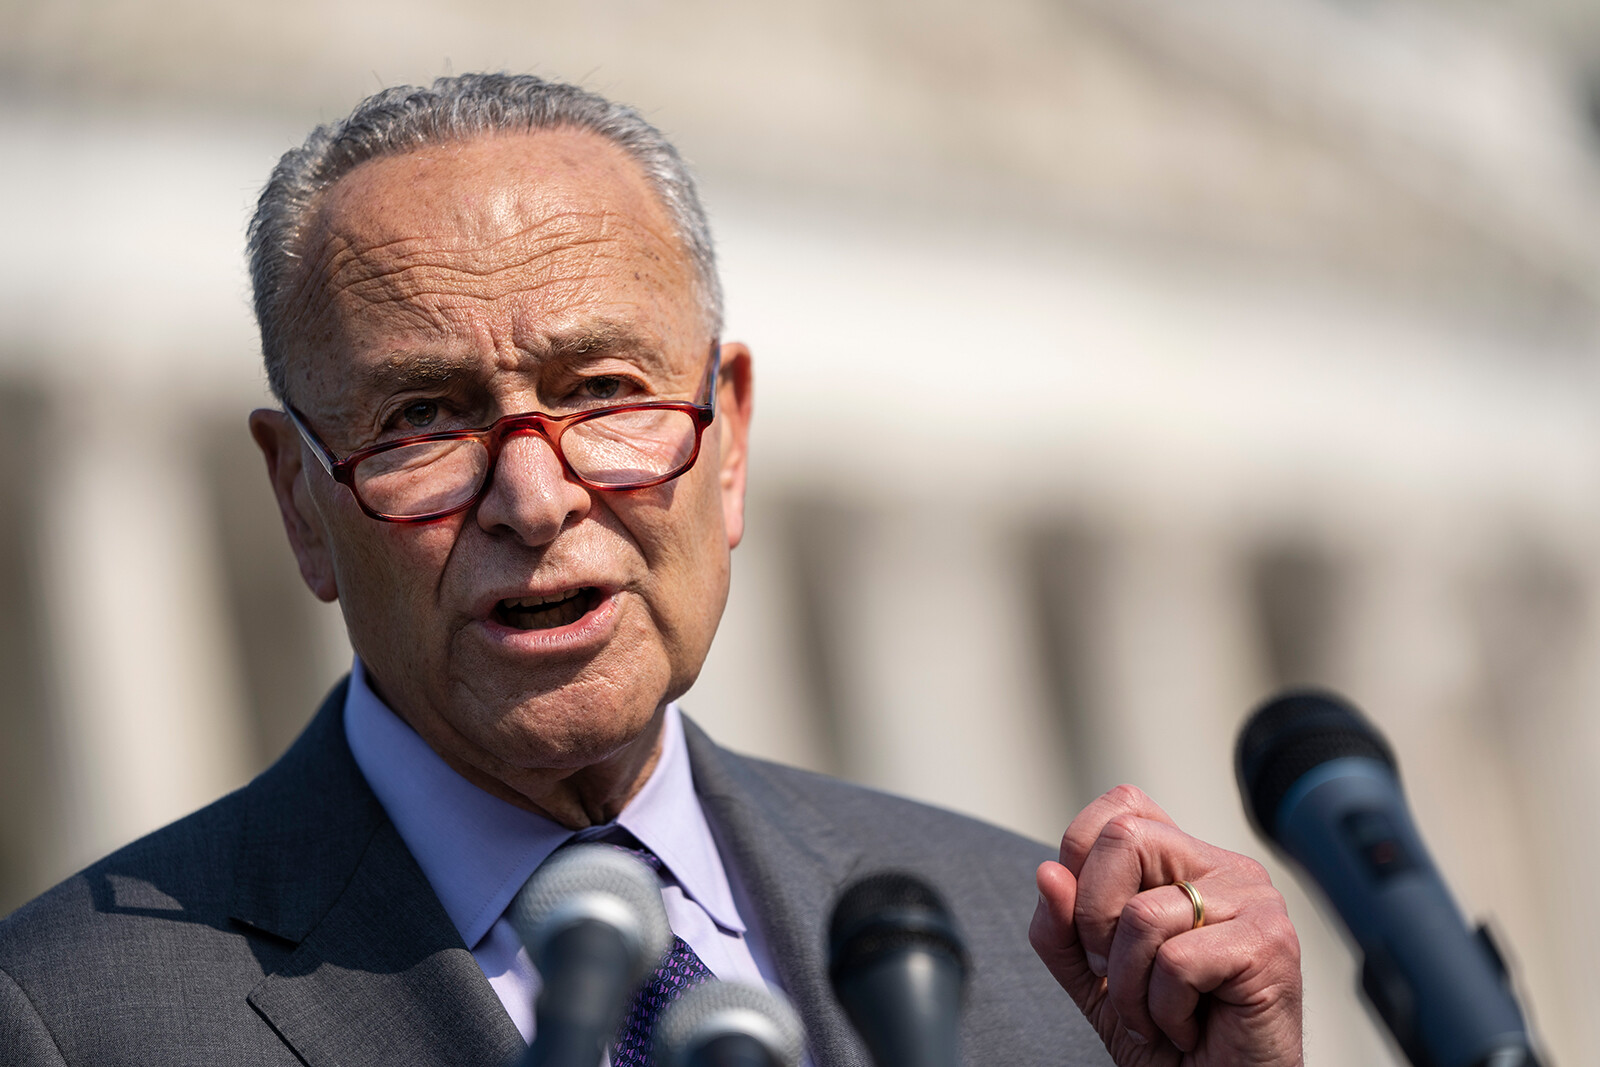 <i>Drew Angerer/Getty Images</i><br/>Over two dozen youth-focused organizations and more than 100 other young people sent Senate Majority Leader Chuck Schumer a letter